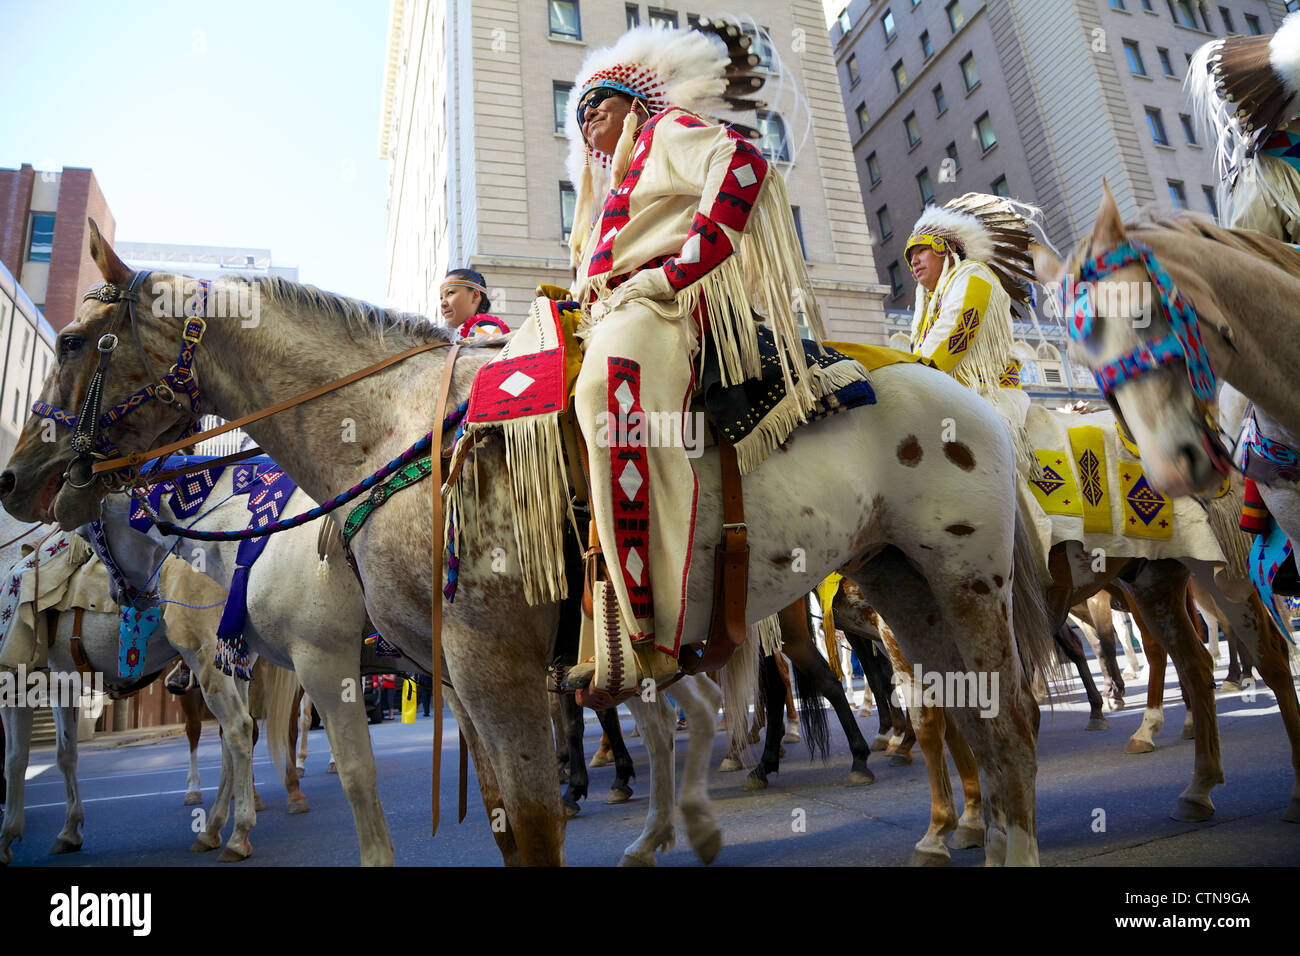 Old times rig procession in downtown Calgary, Alberta - Stock Image